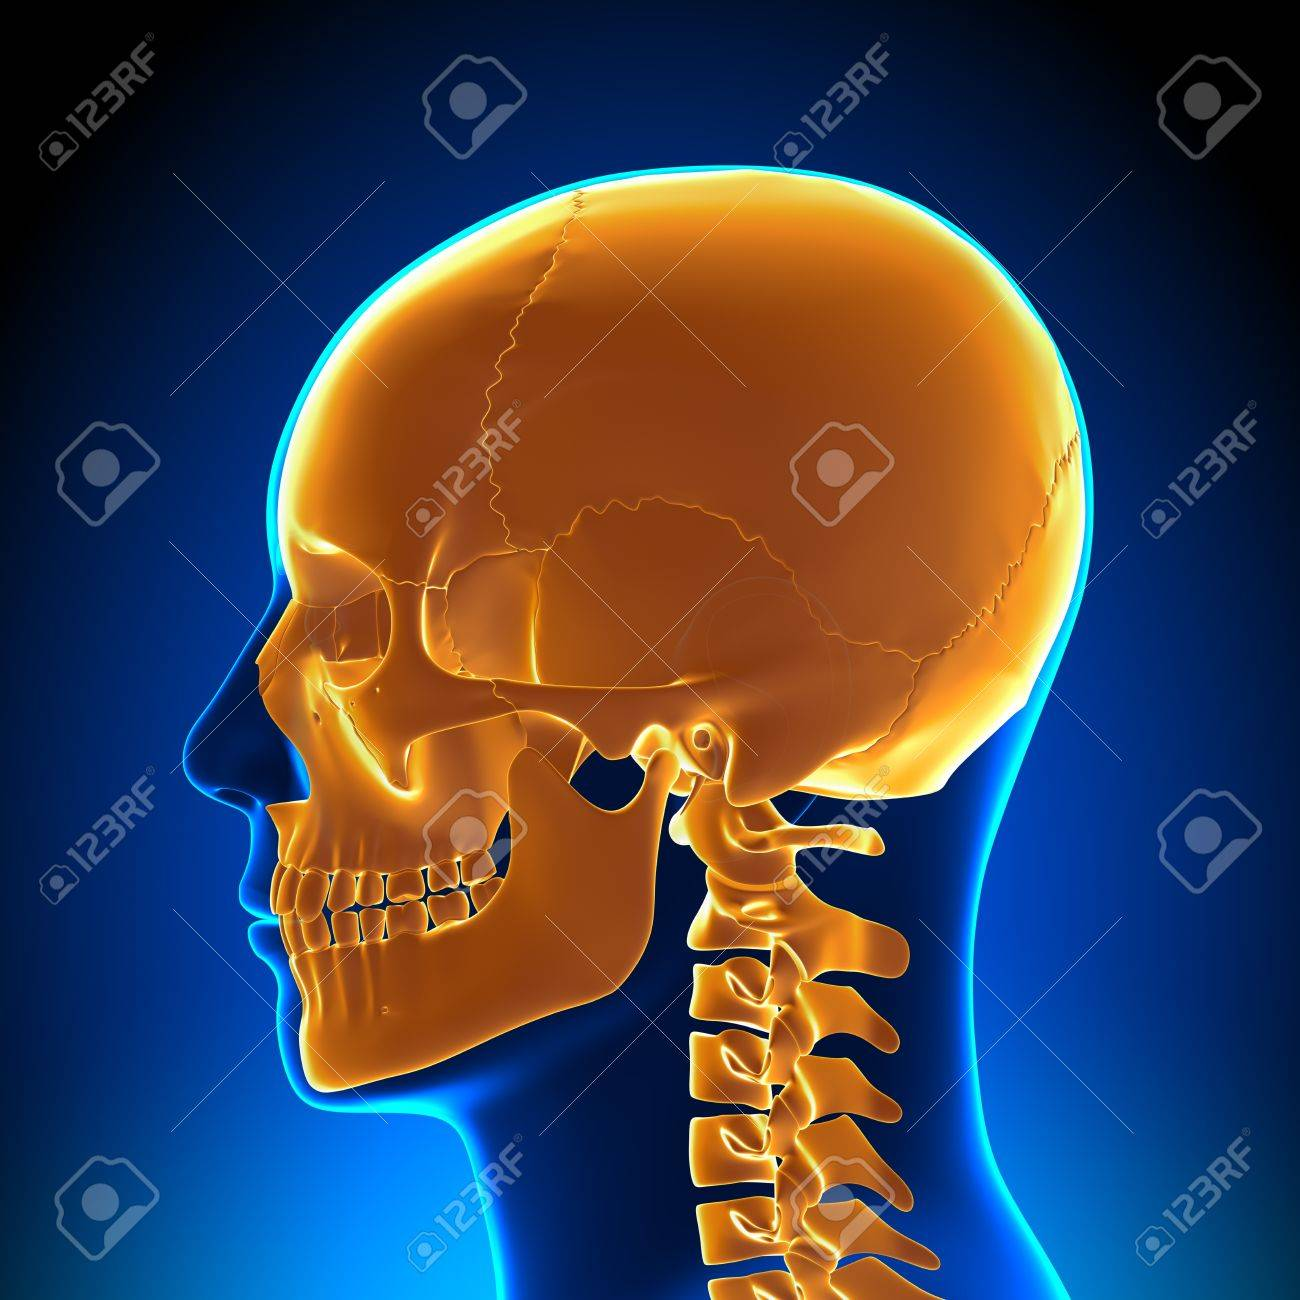 Brain Anatomy Orange Skull Stock Photo, Picture And Royalty Free ...